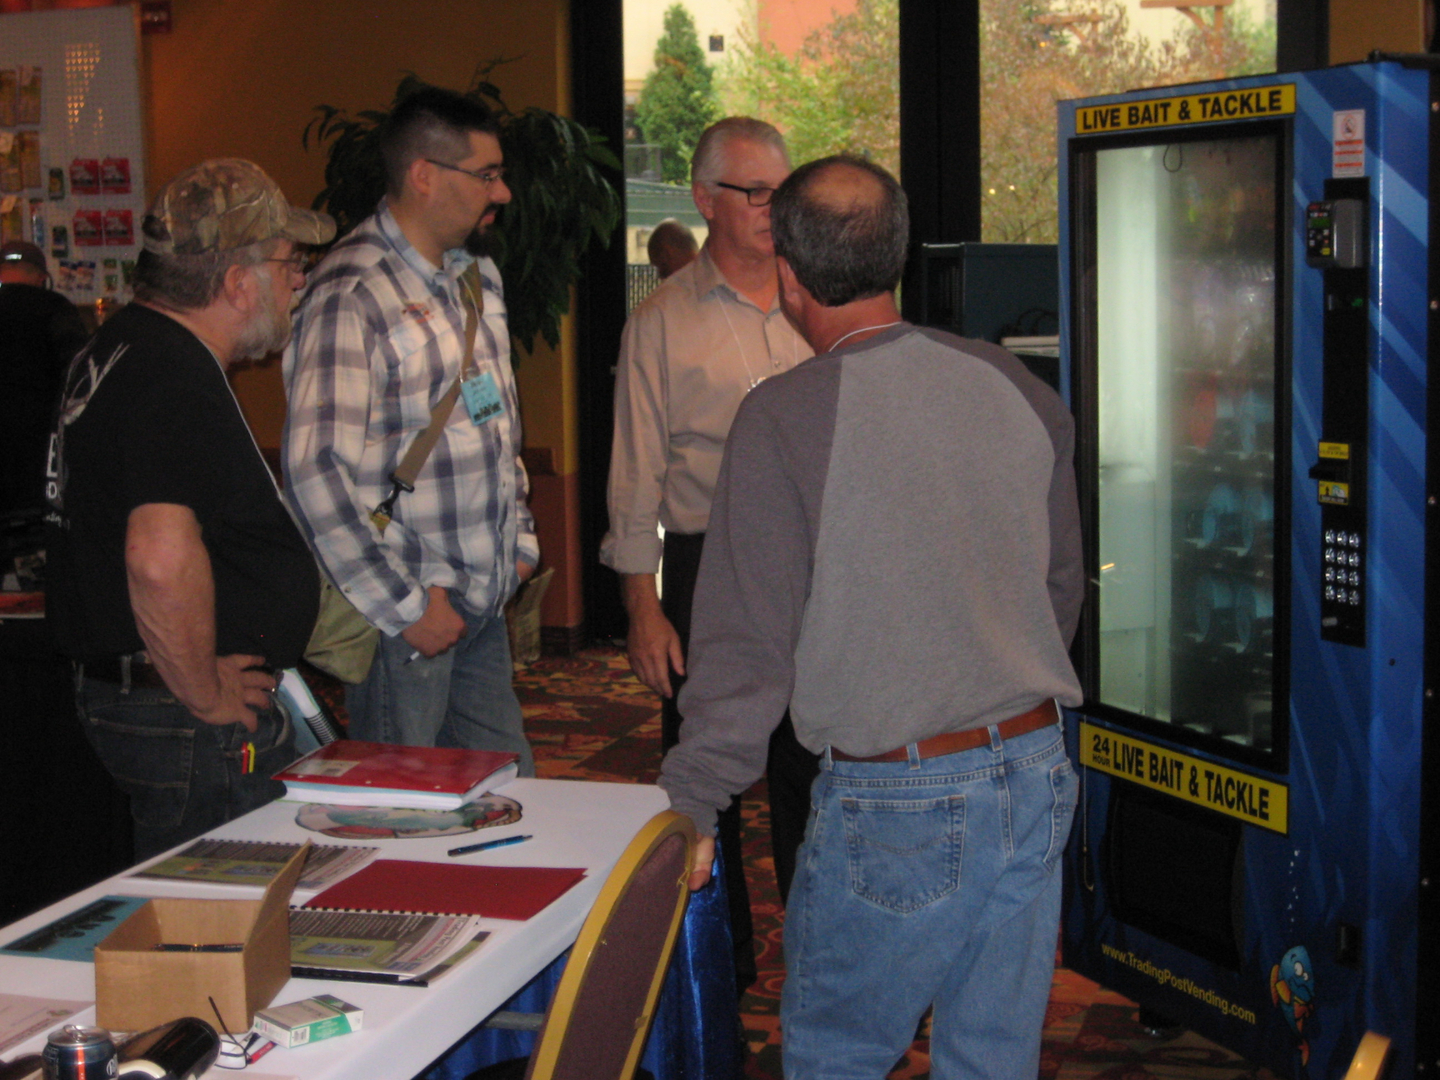 Live Bait and Tackle Vending Machines - After Hours Live